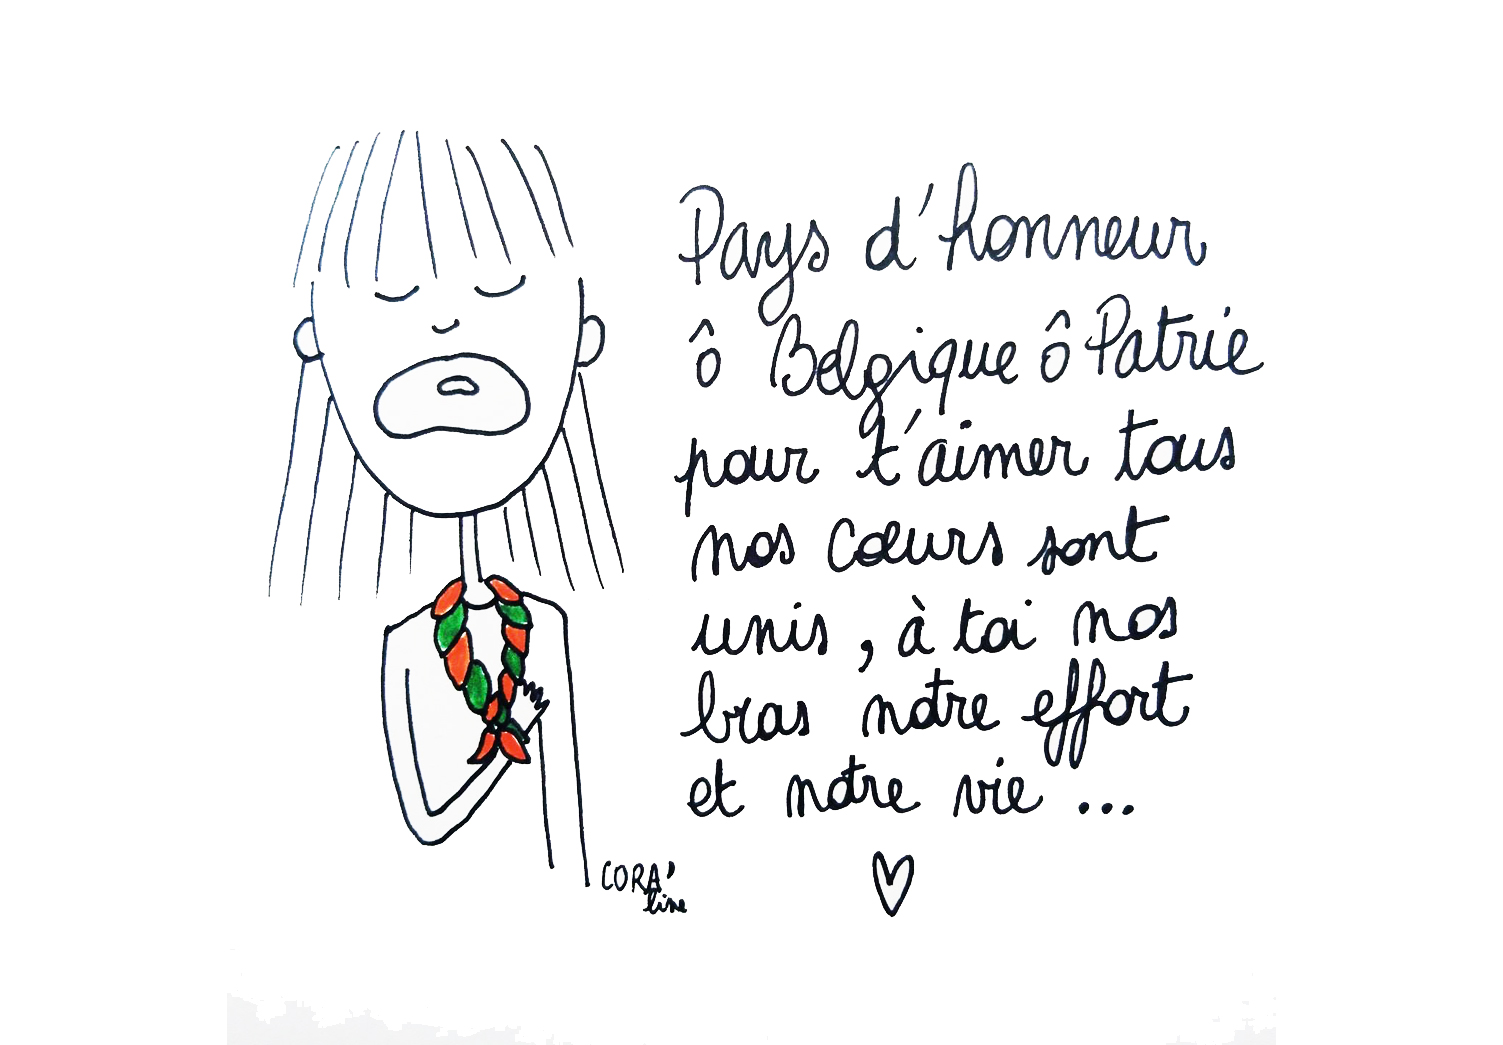 Dessin du jour 21juillet fete nationale belge hymne national brabanconne version mouvement de jeunesse